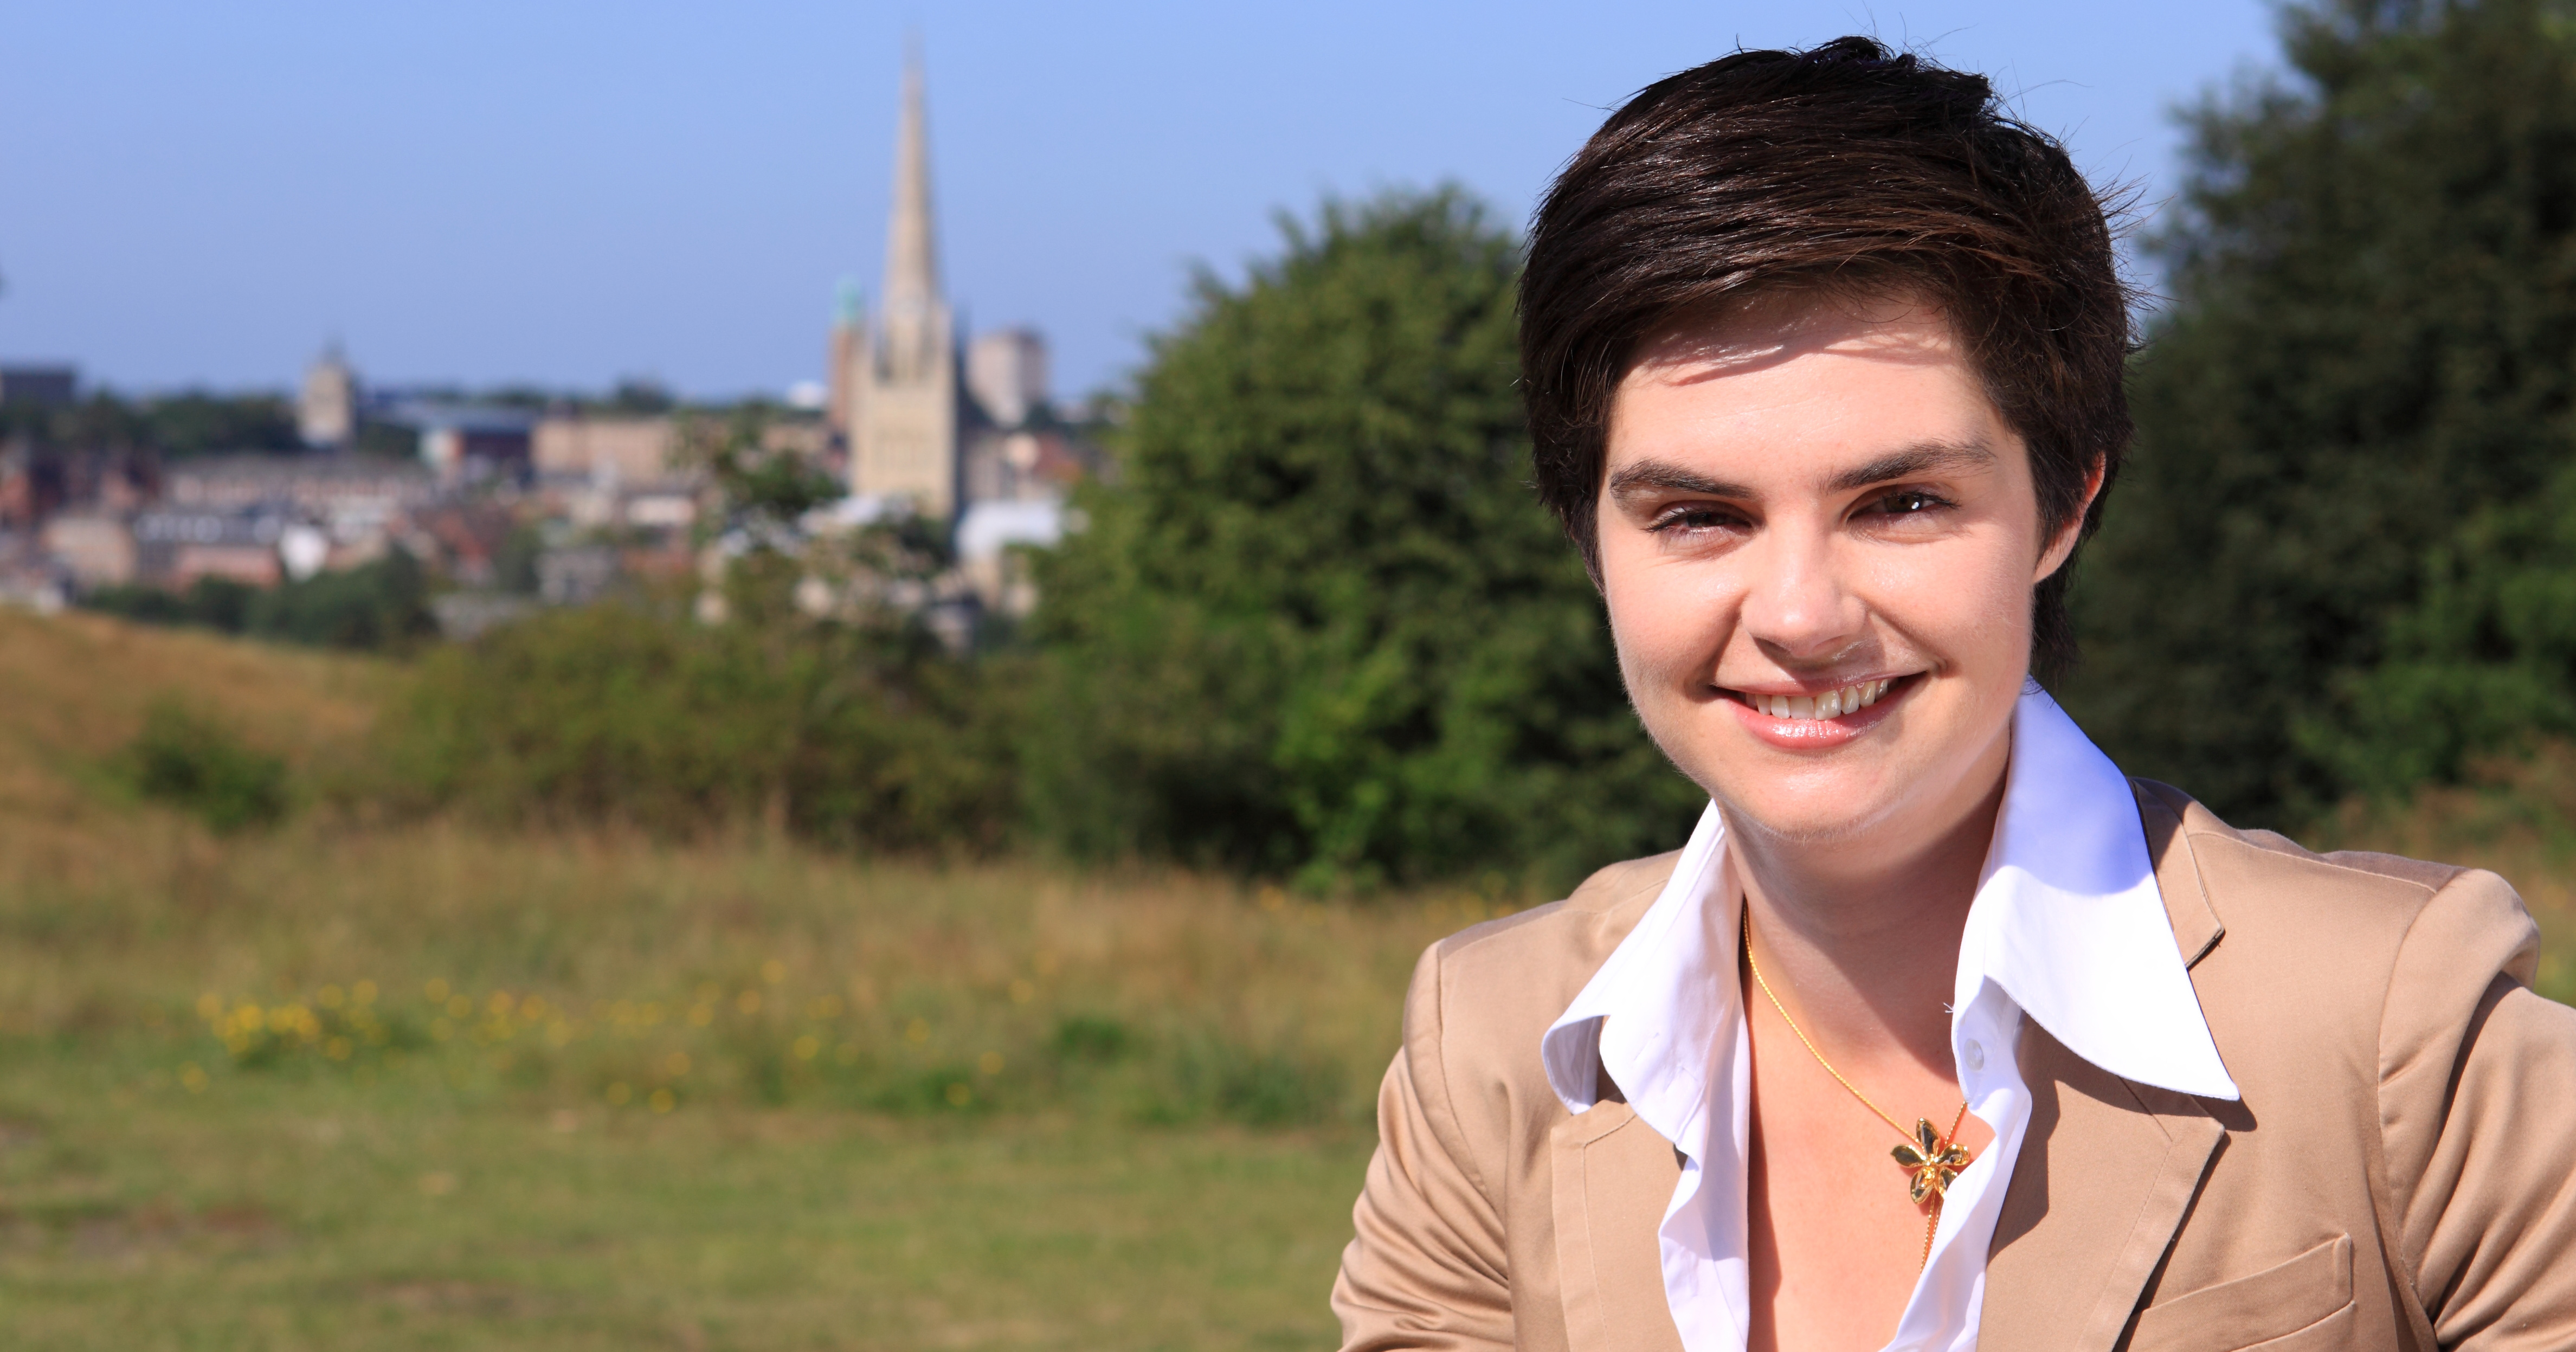 Politician Chloe Smith, who recently commented on same-sex marriage in Northern Ireland, smiling